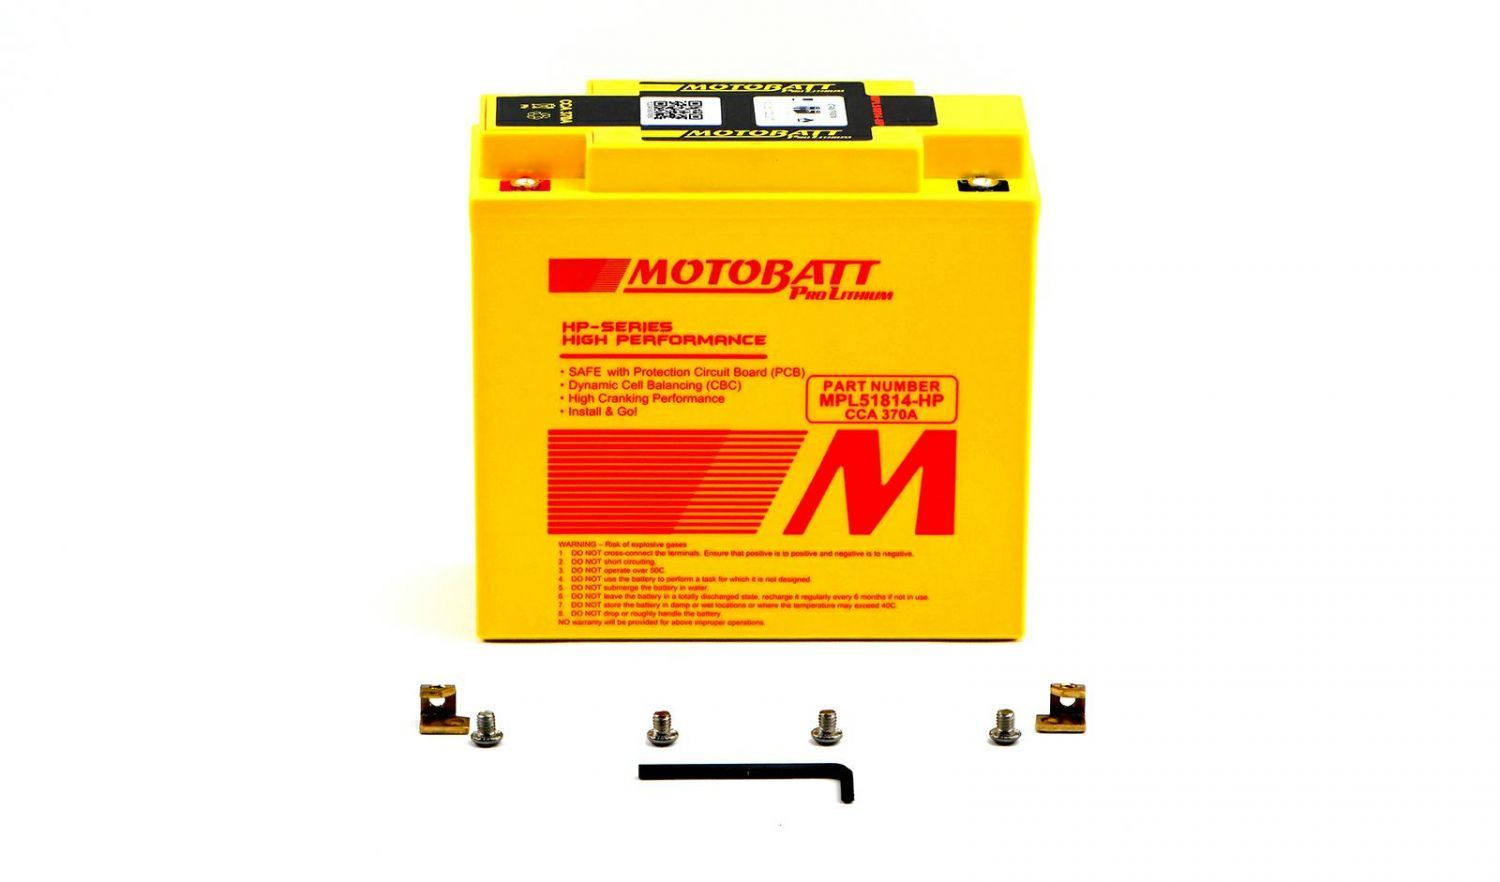 Motobatt Lithium Batteries - 501186MR image